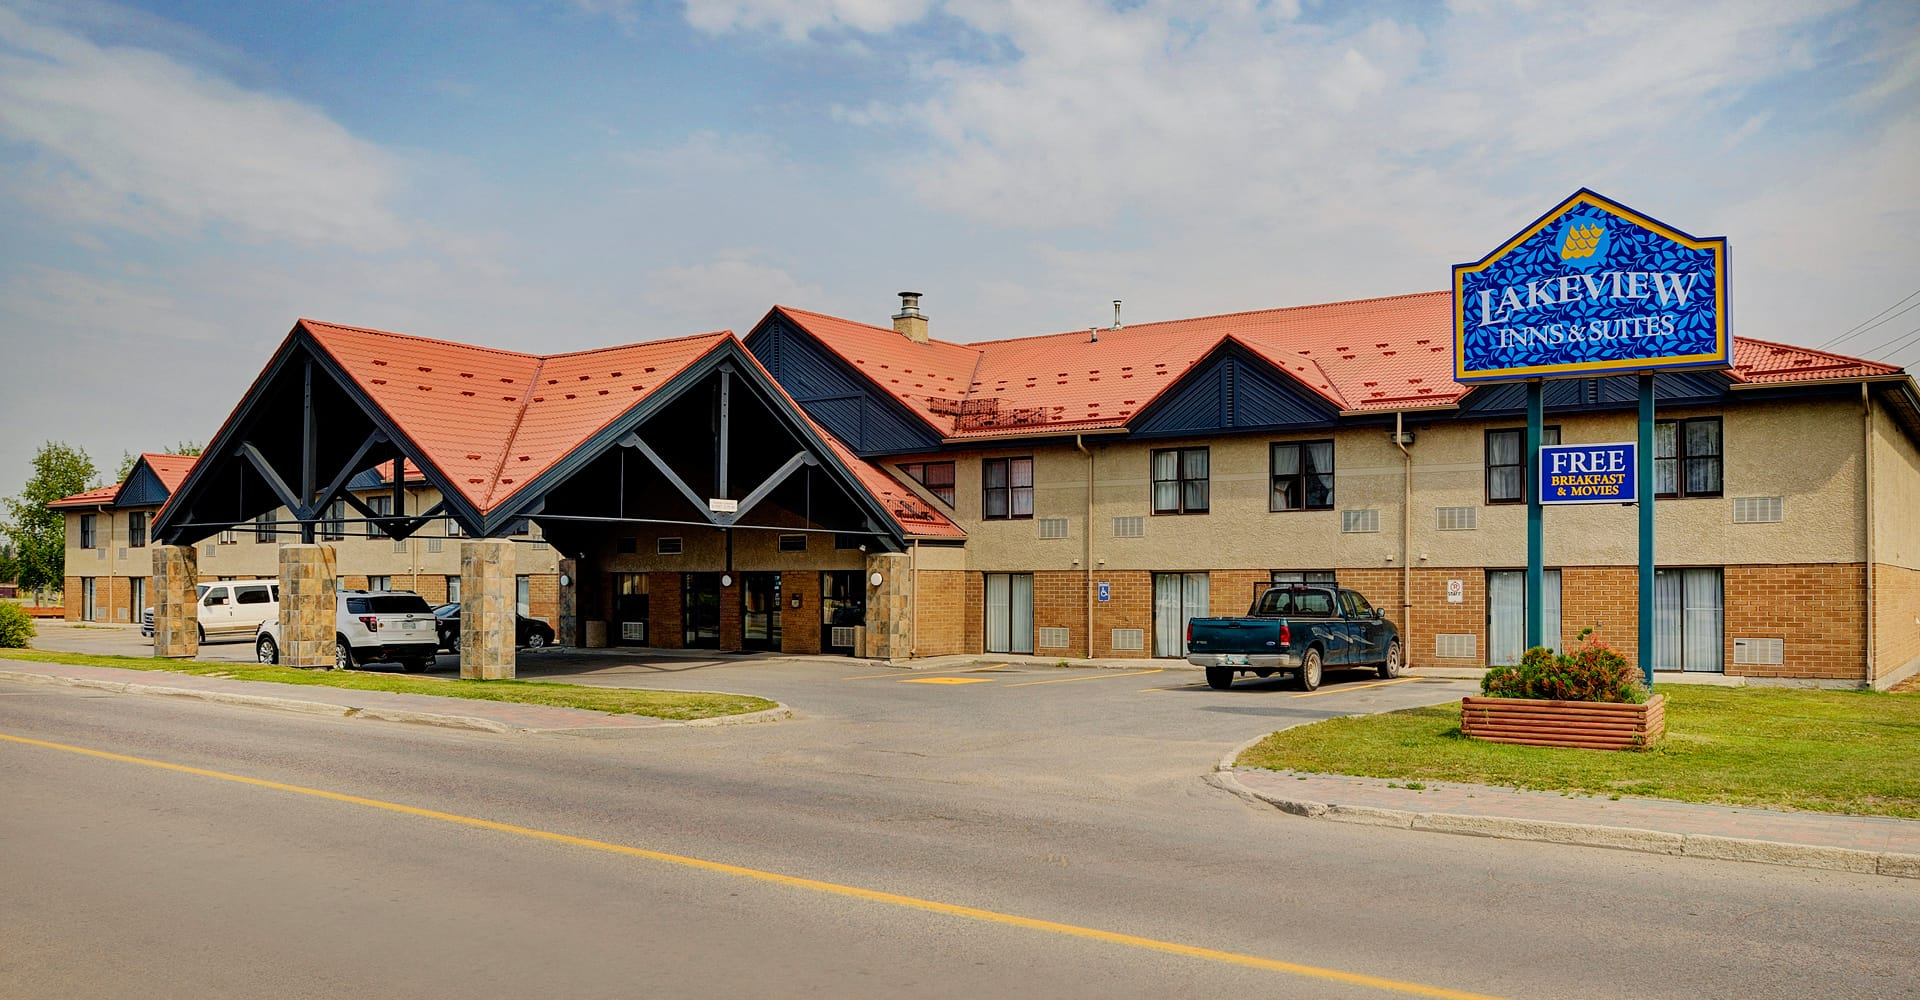 Lakeview Inns Suites Thompson